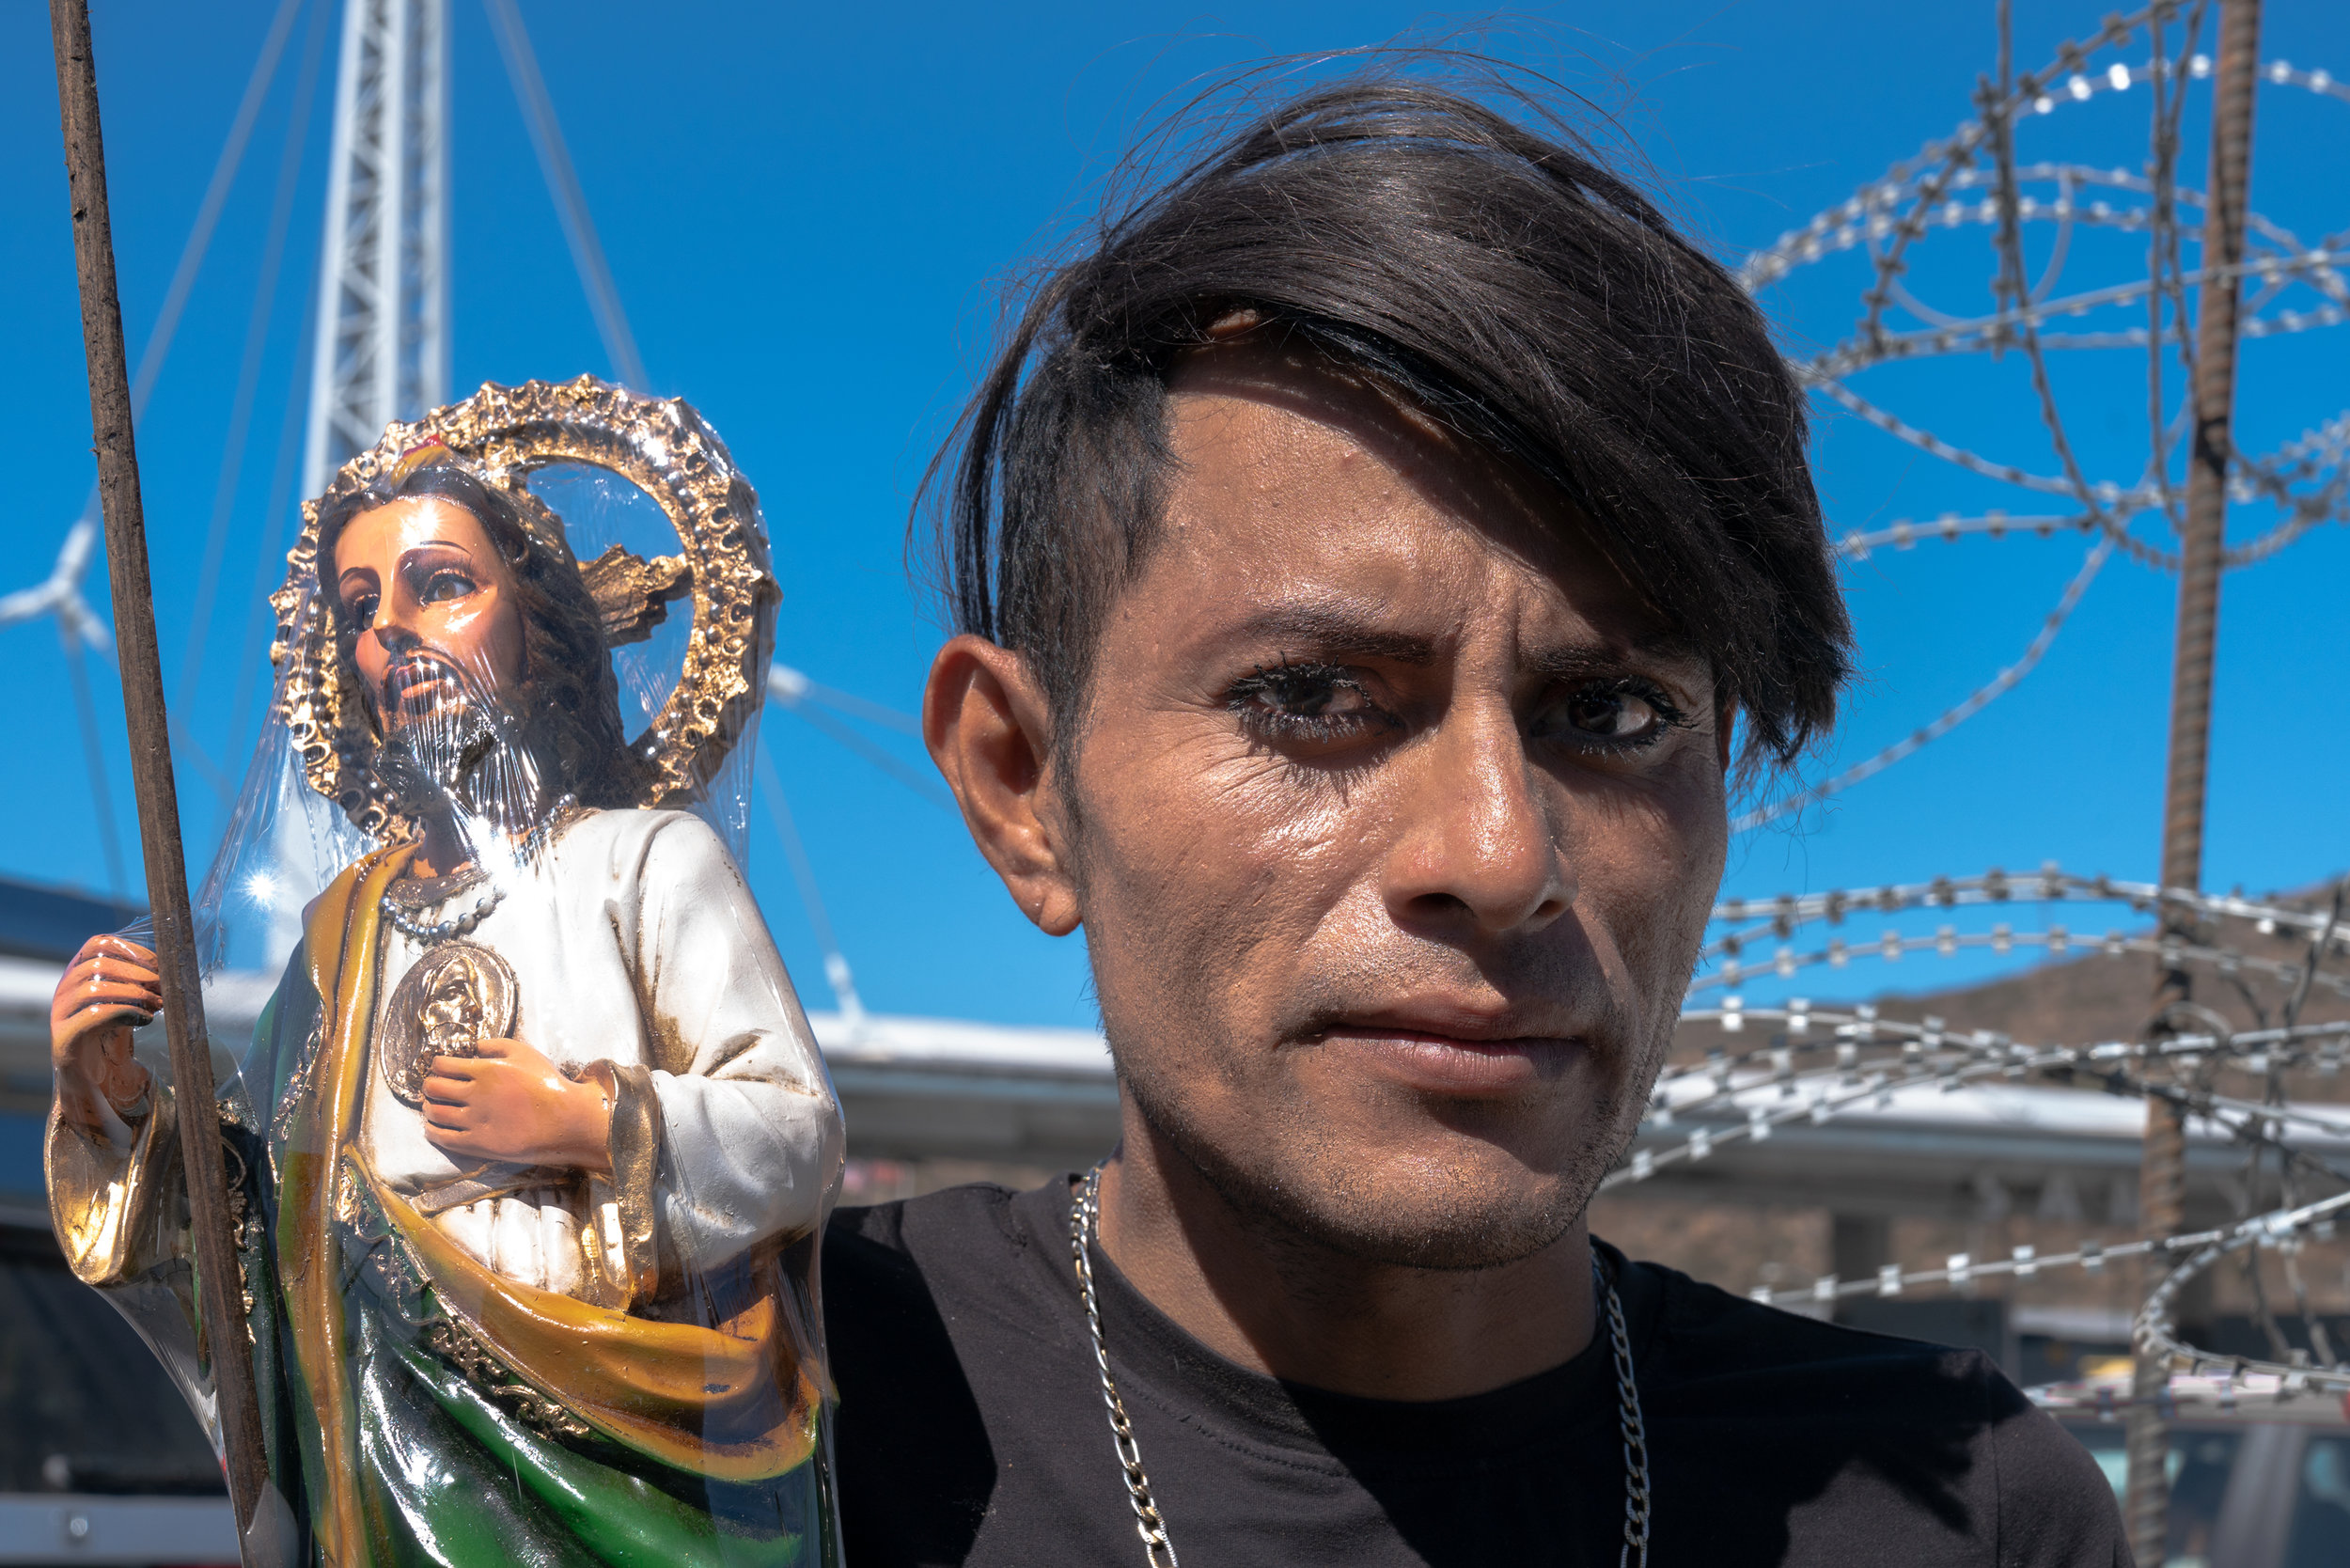 A man hawks a religious statue to the people in cars waiting in line to cross the American border.